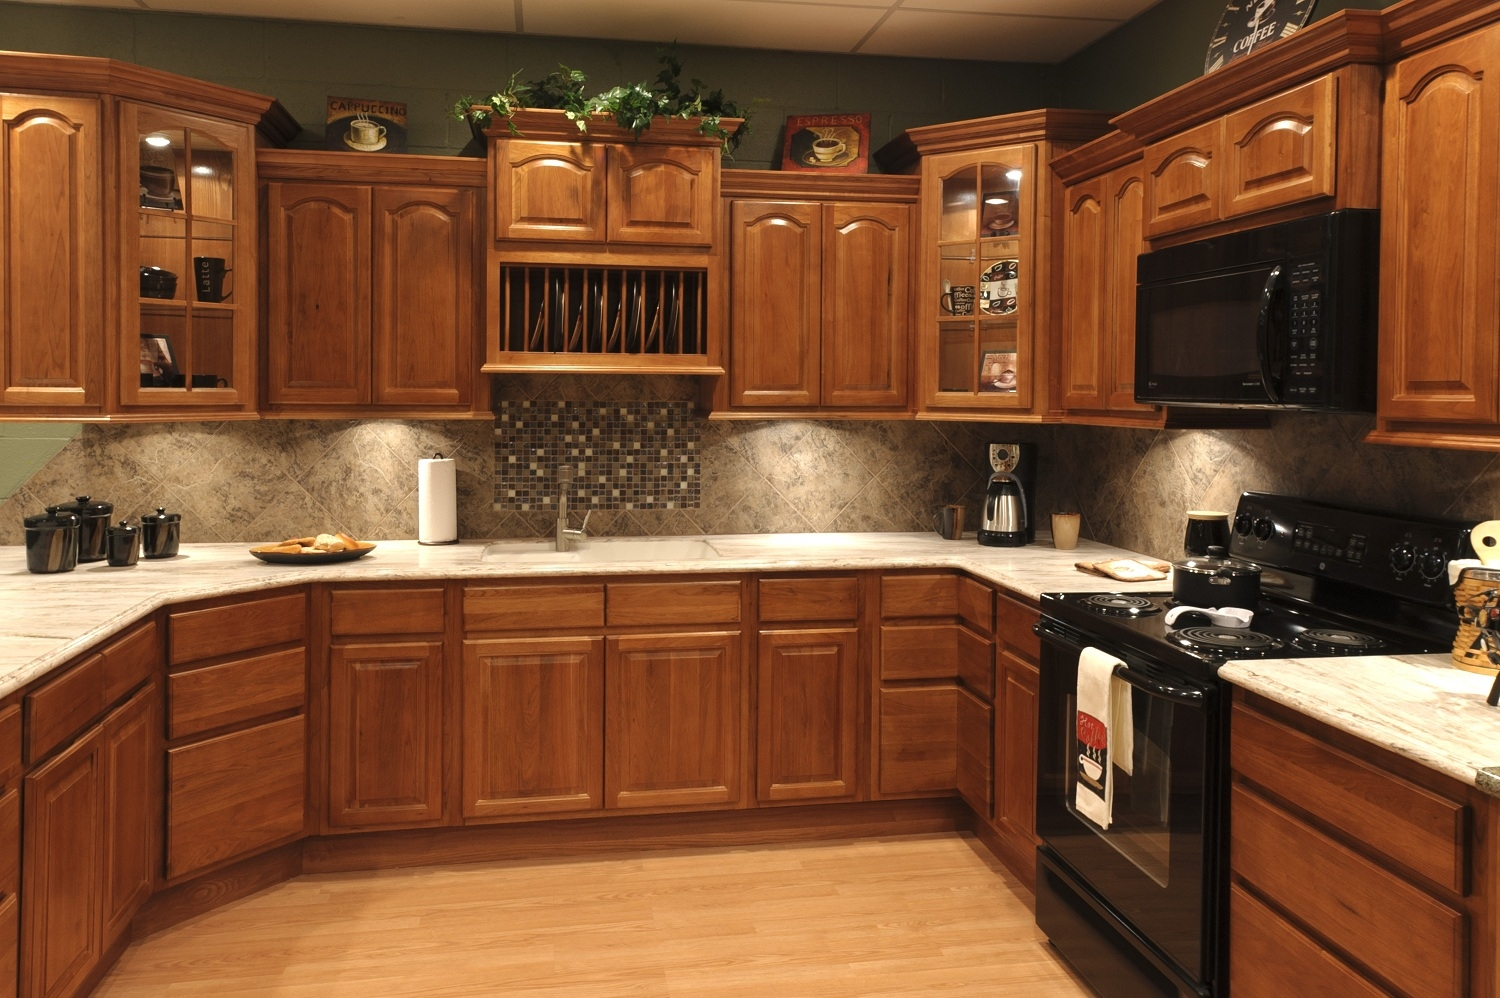 Permalink to Beautiful Kitchen Cabinet Designs